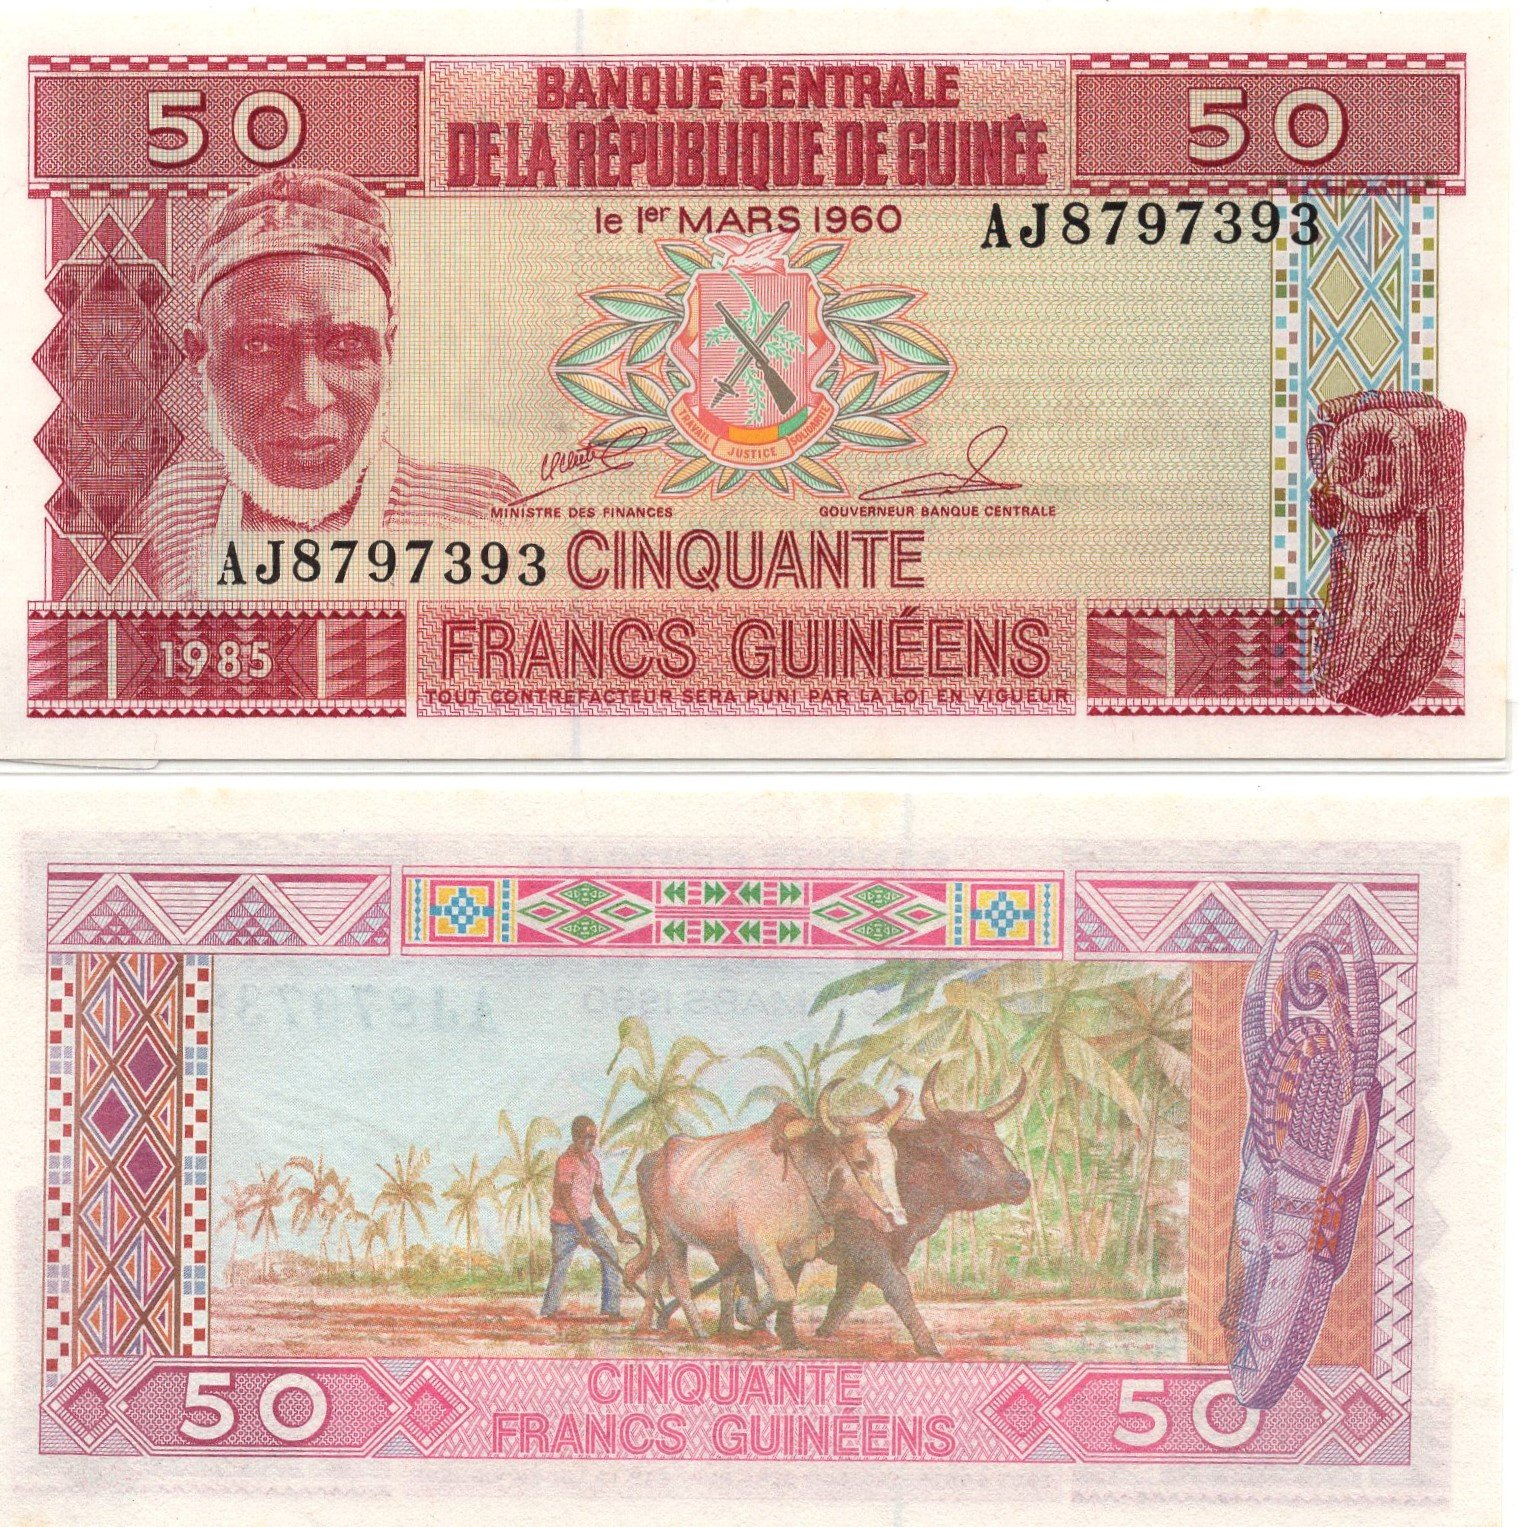 Guinea 50 guineens banknote for sale